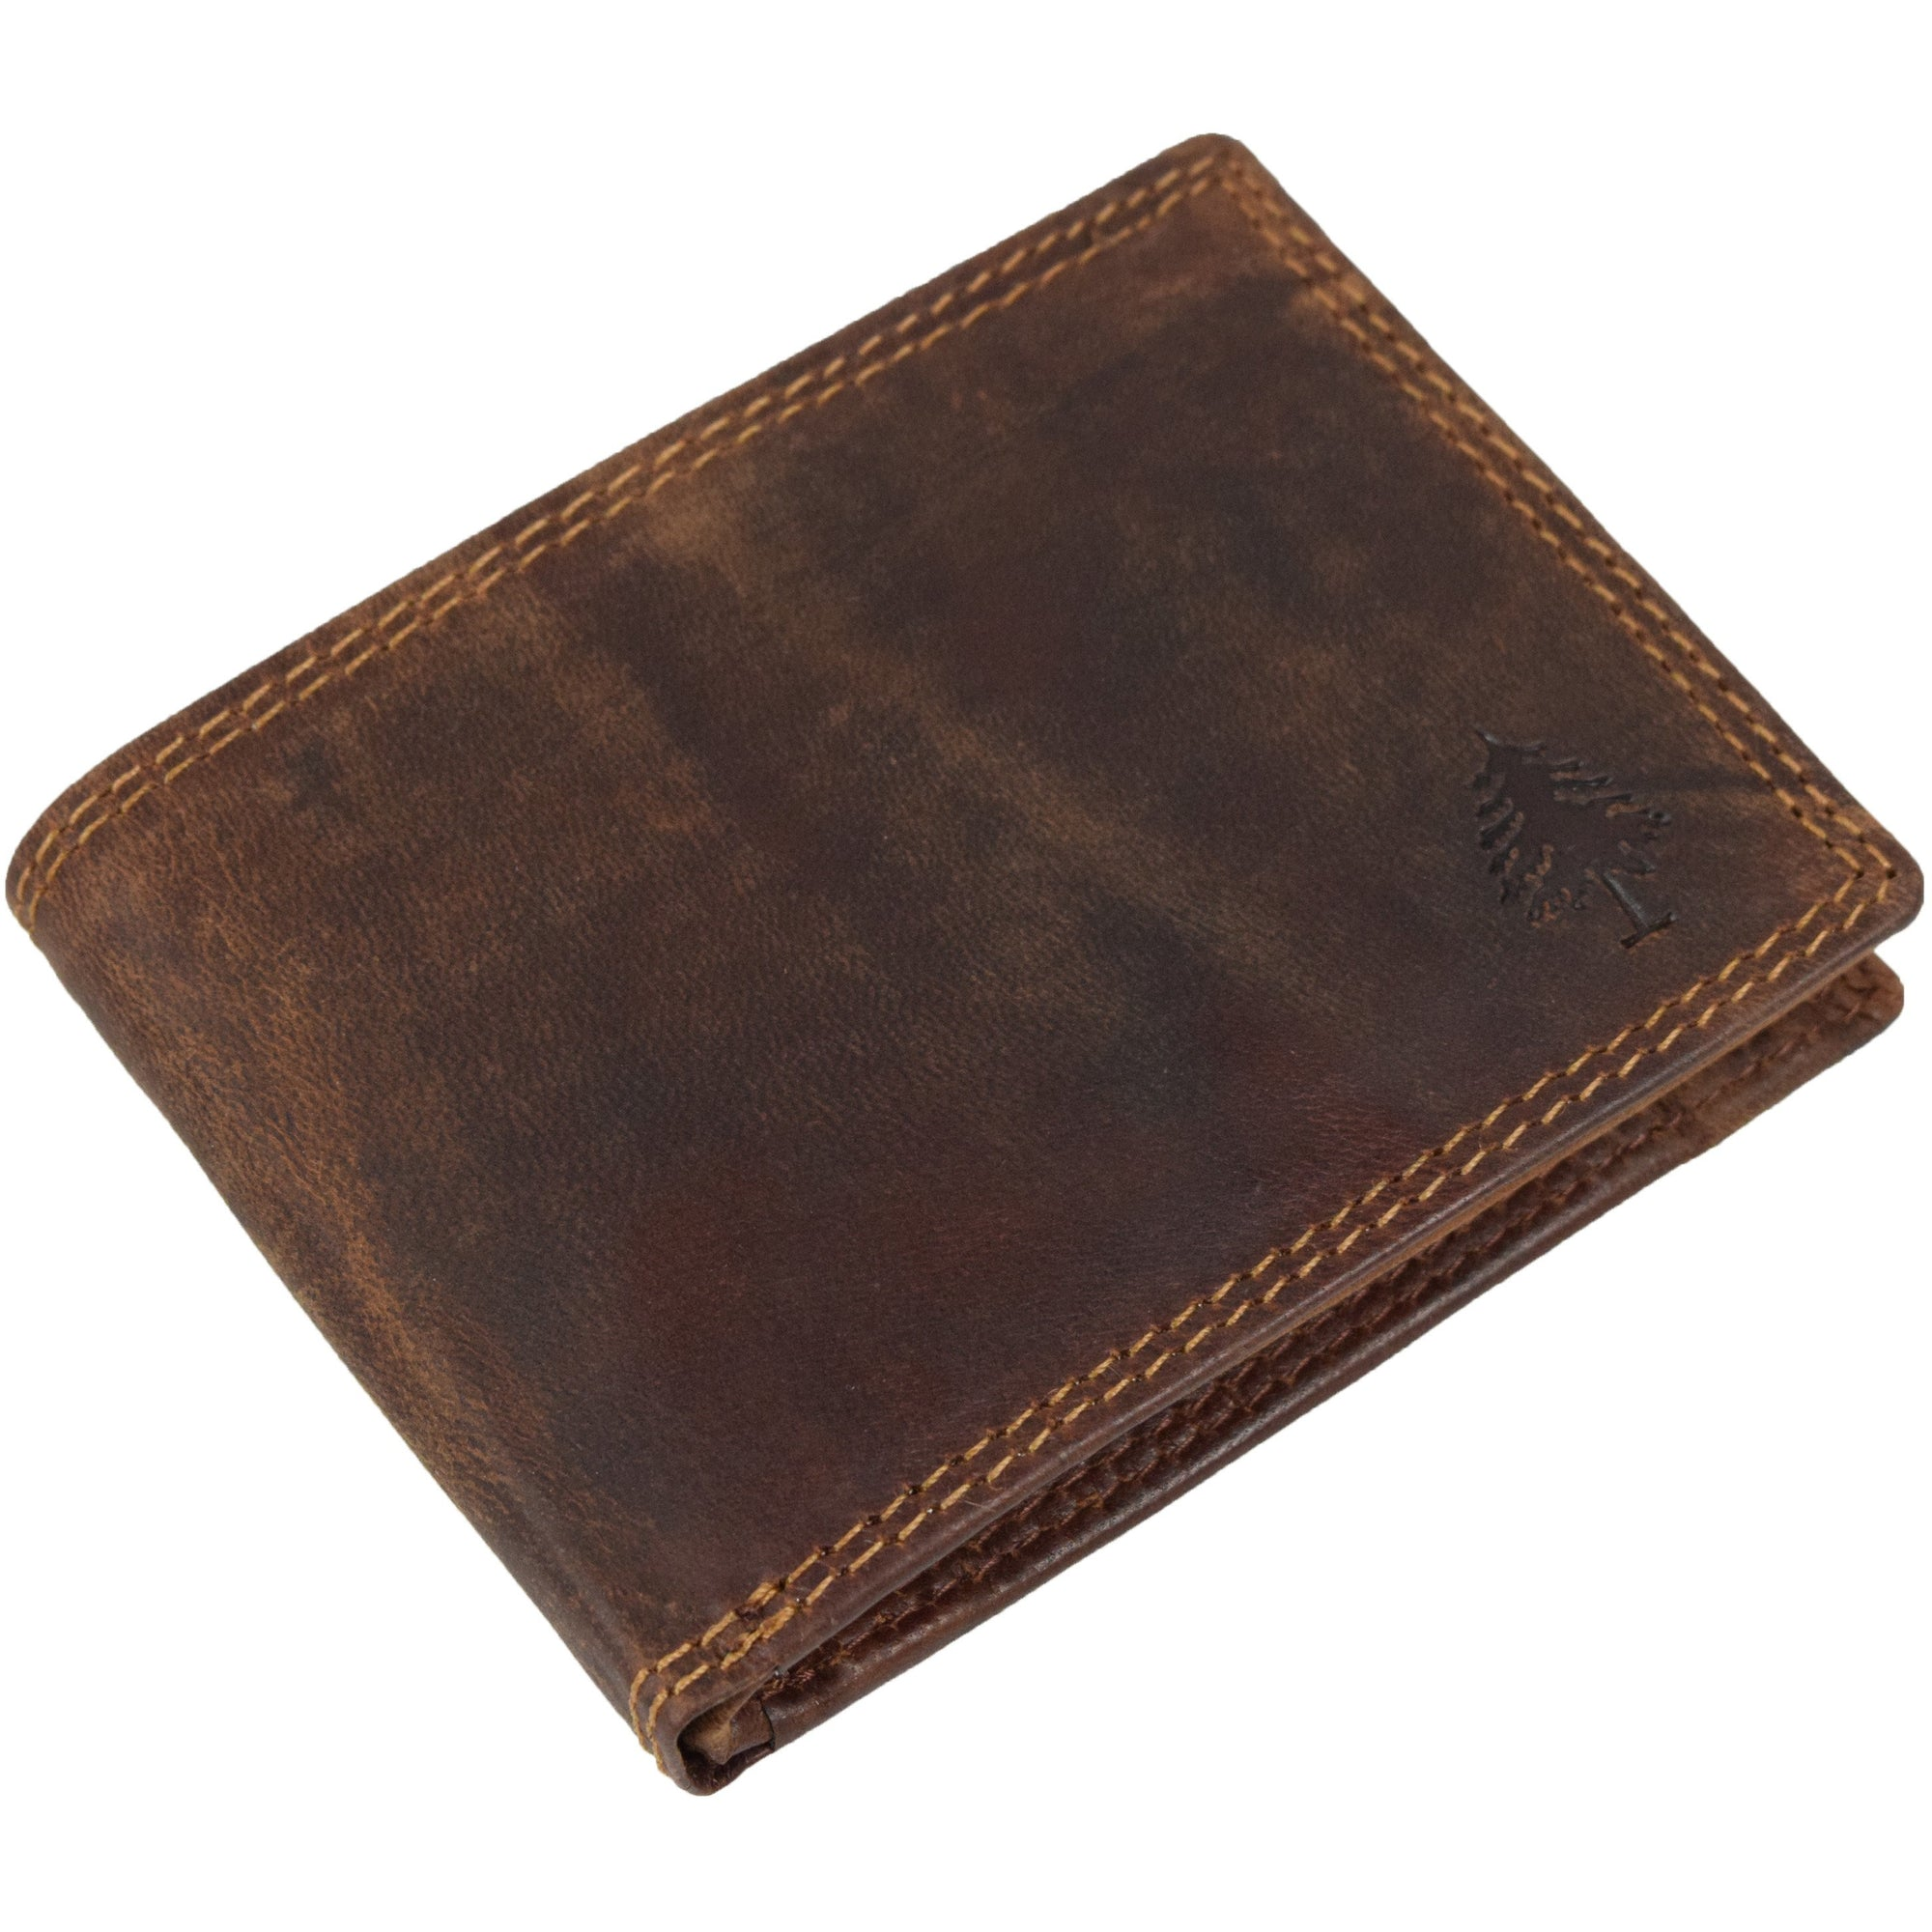 Leather Wallet Judd - Sandal - Greenwood Australia - Handcrafted Premium Leather Goods